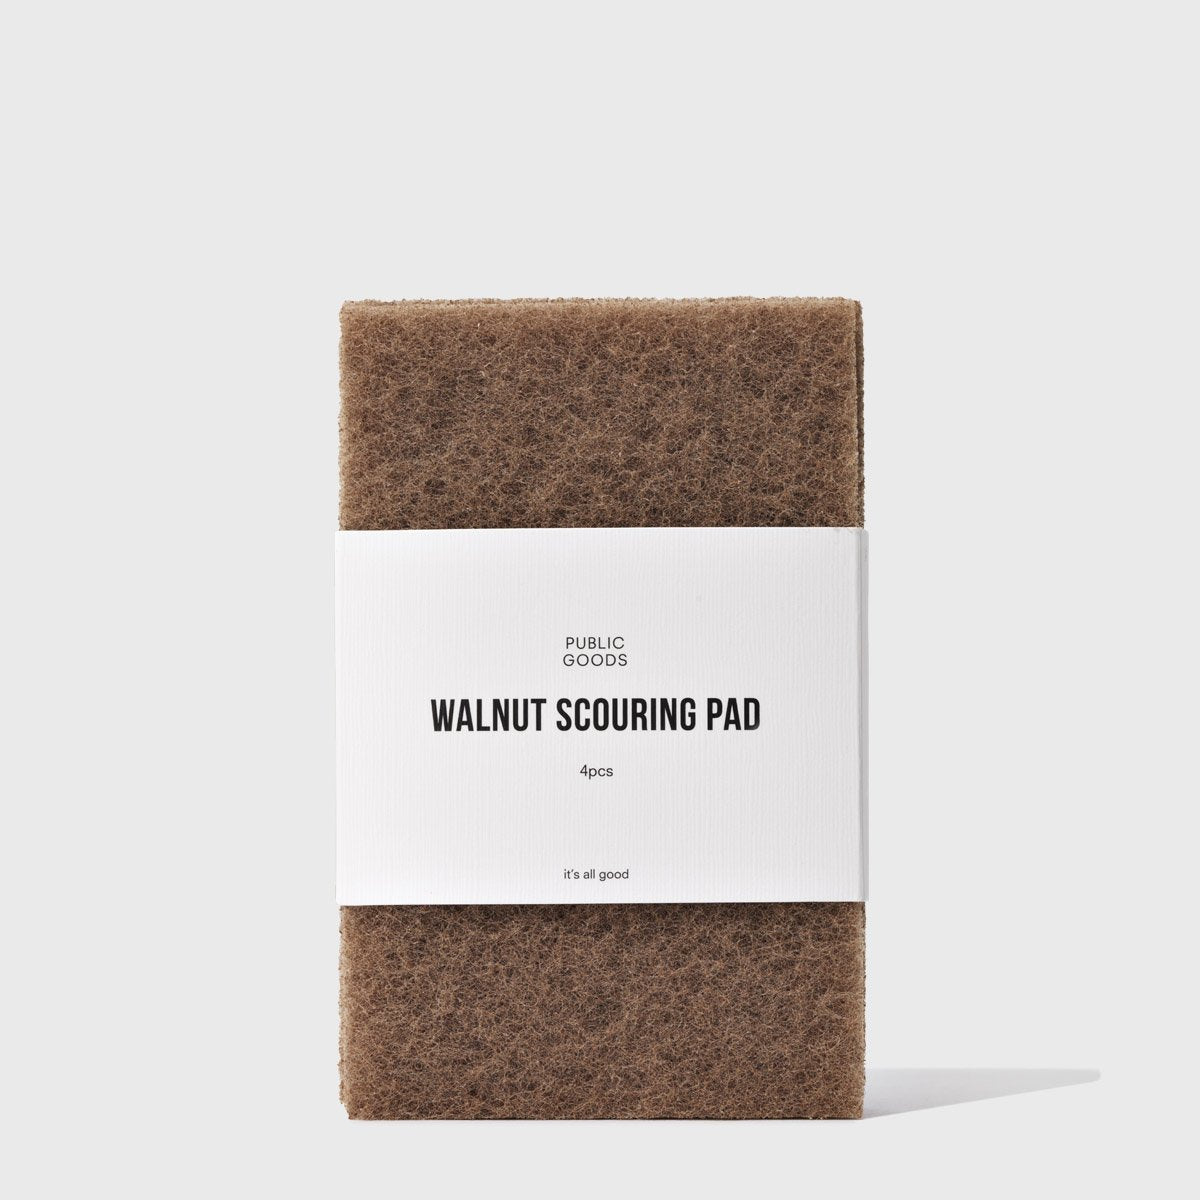 Walnut Scouring Pad 4 ct (Case of 20)